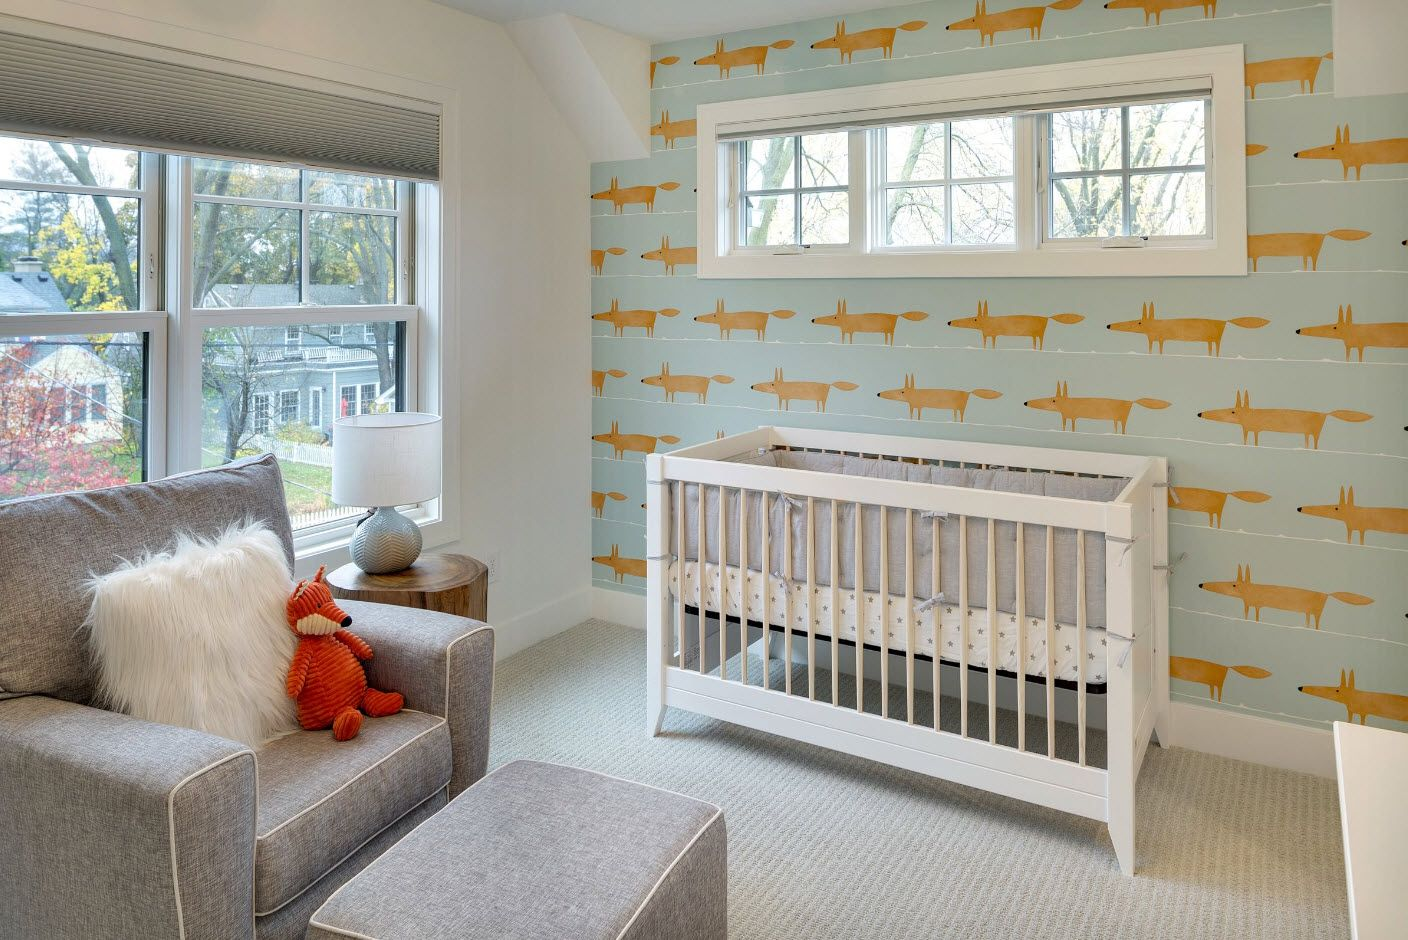 Animalistic theme for small kids' room